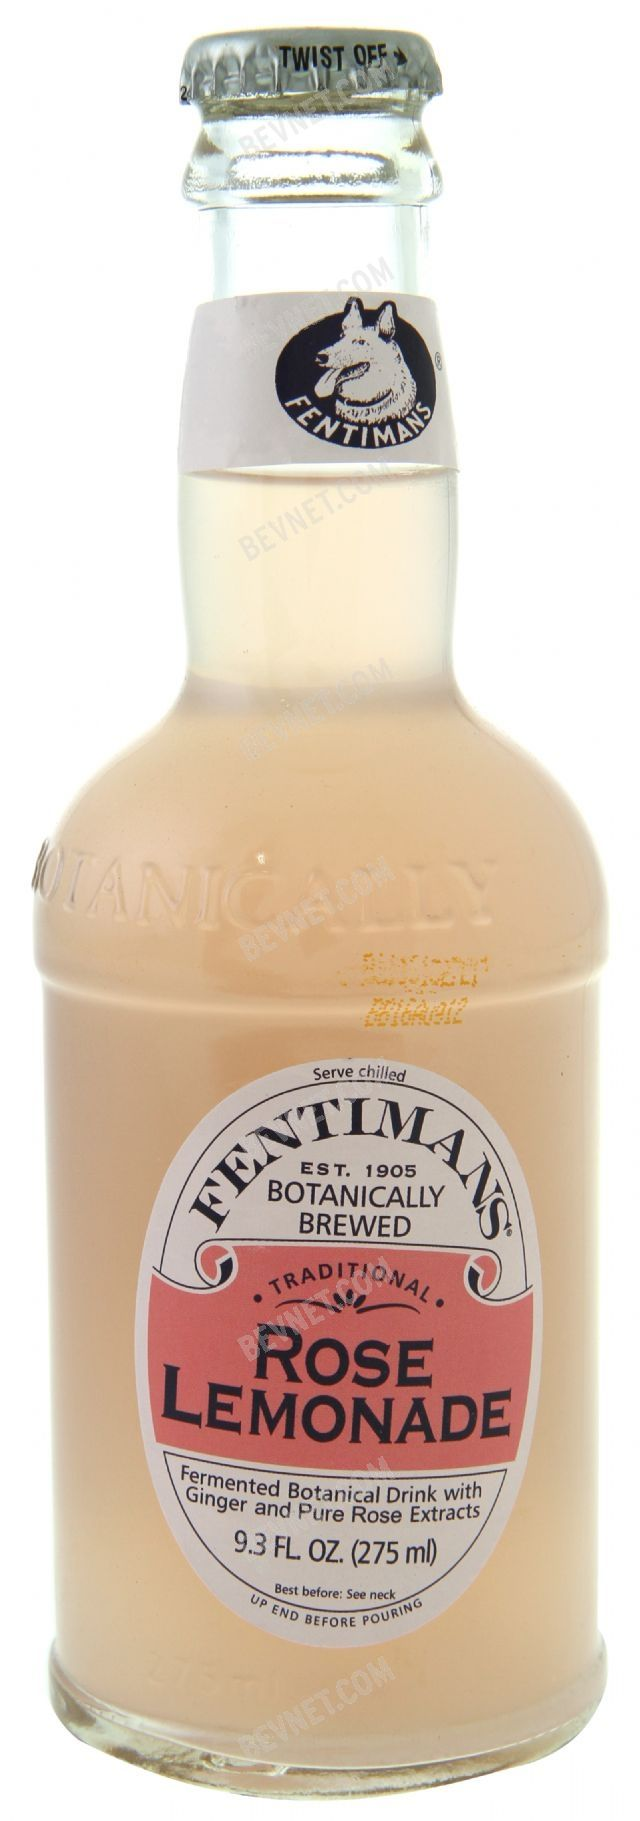 Fentimans Botanically Brewed Beverages: